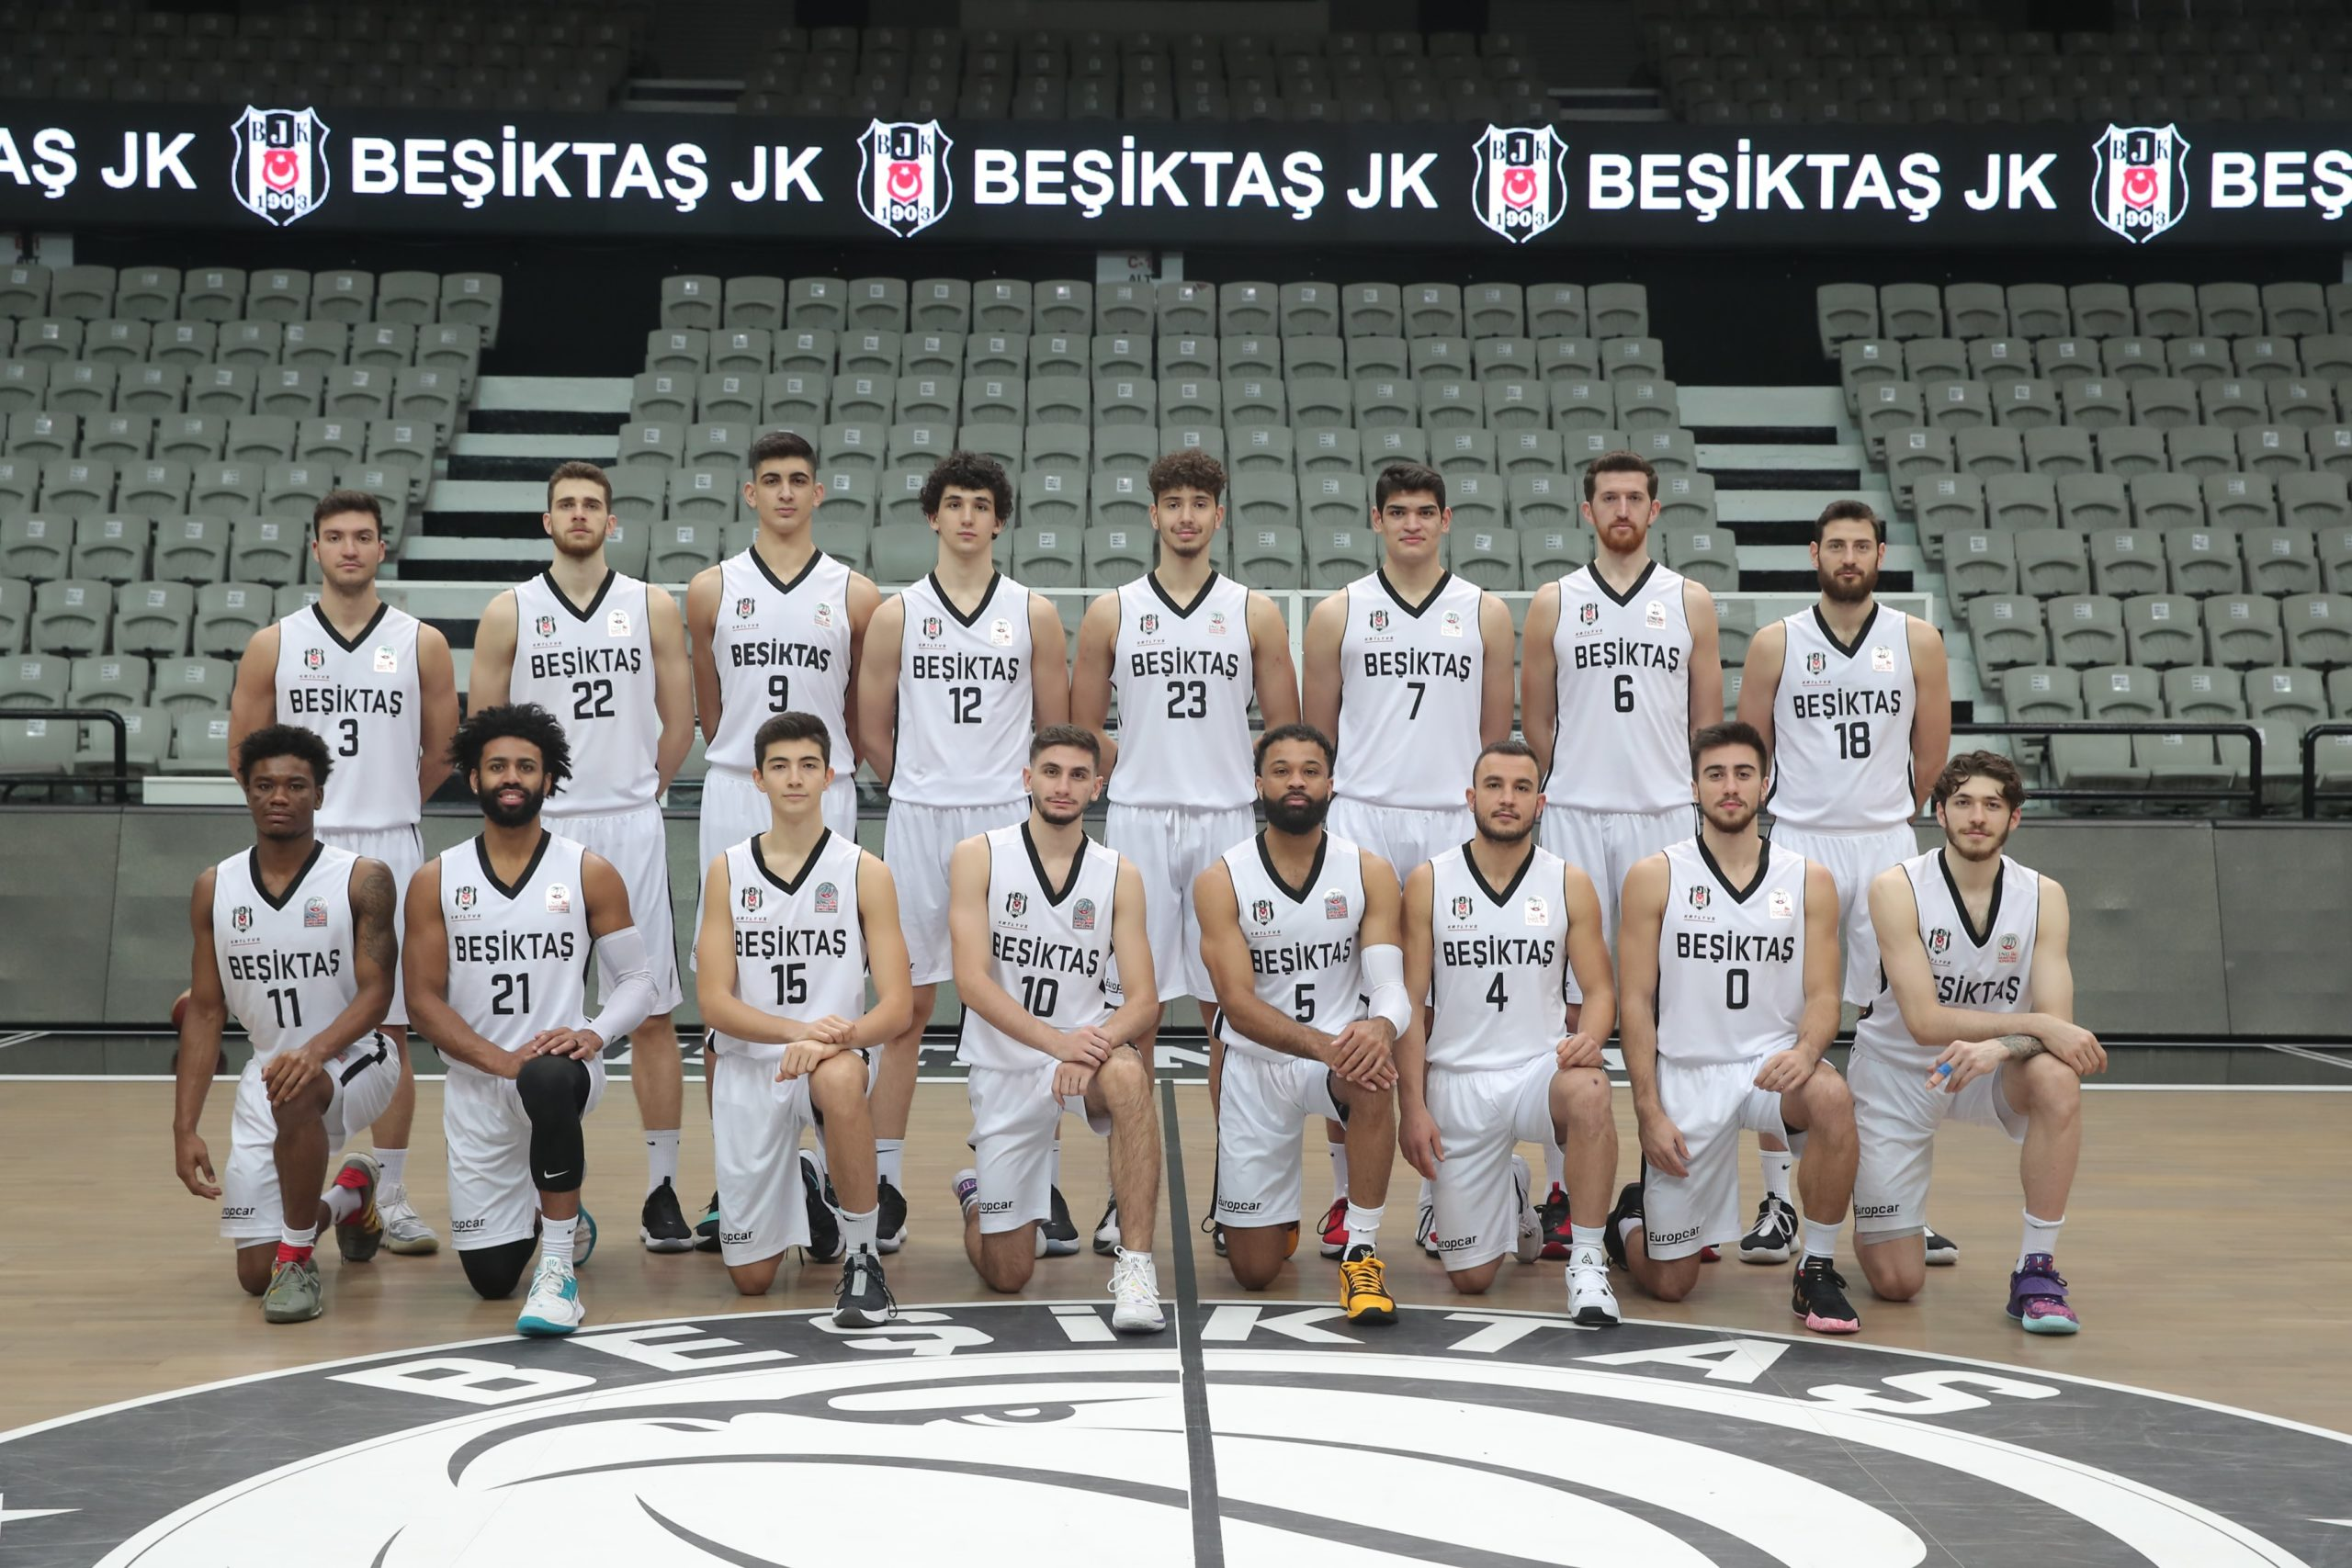 bjk icrypex